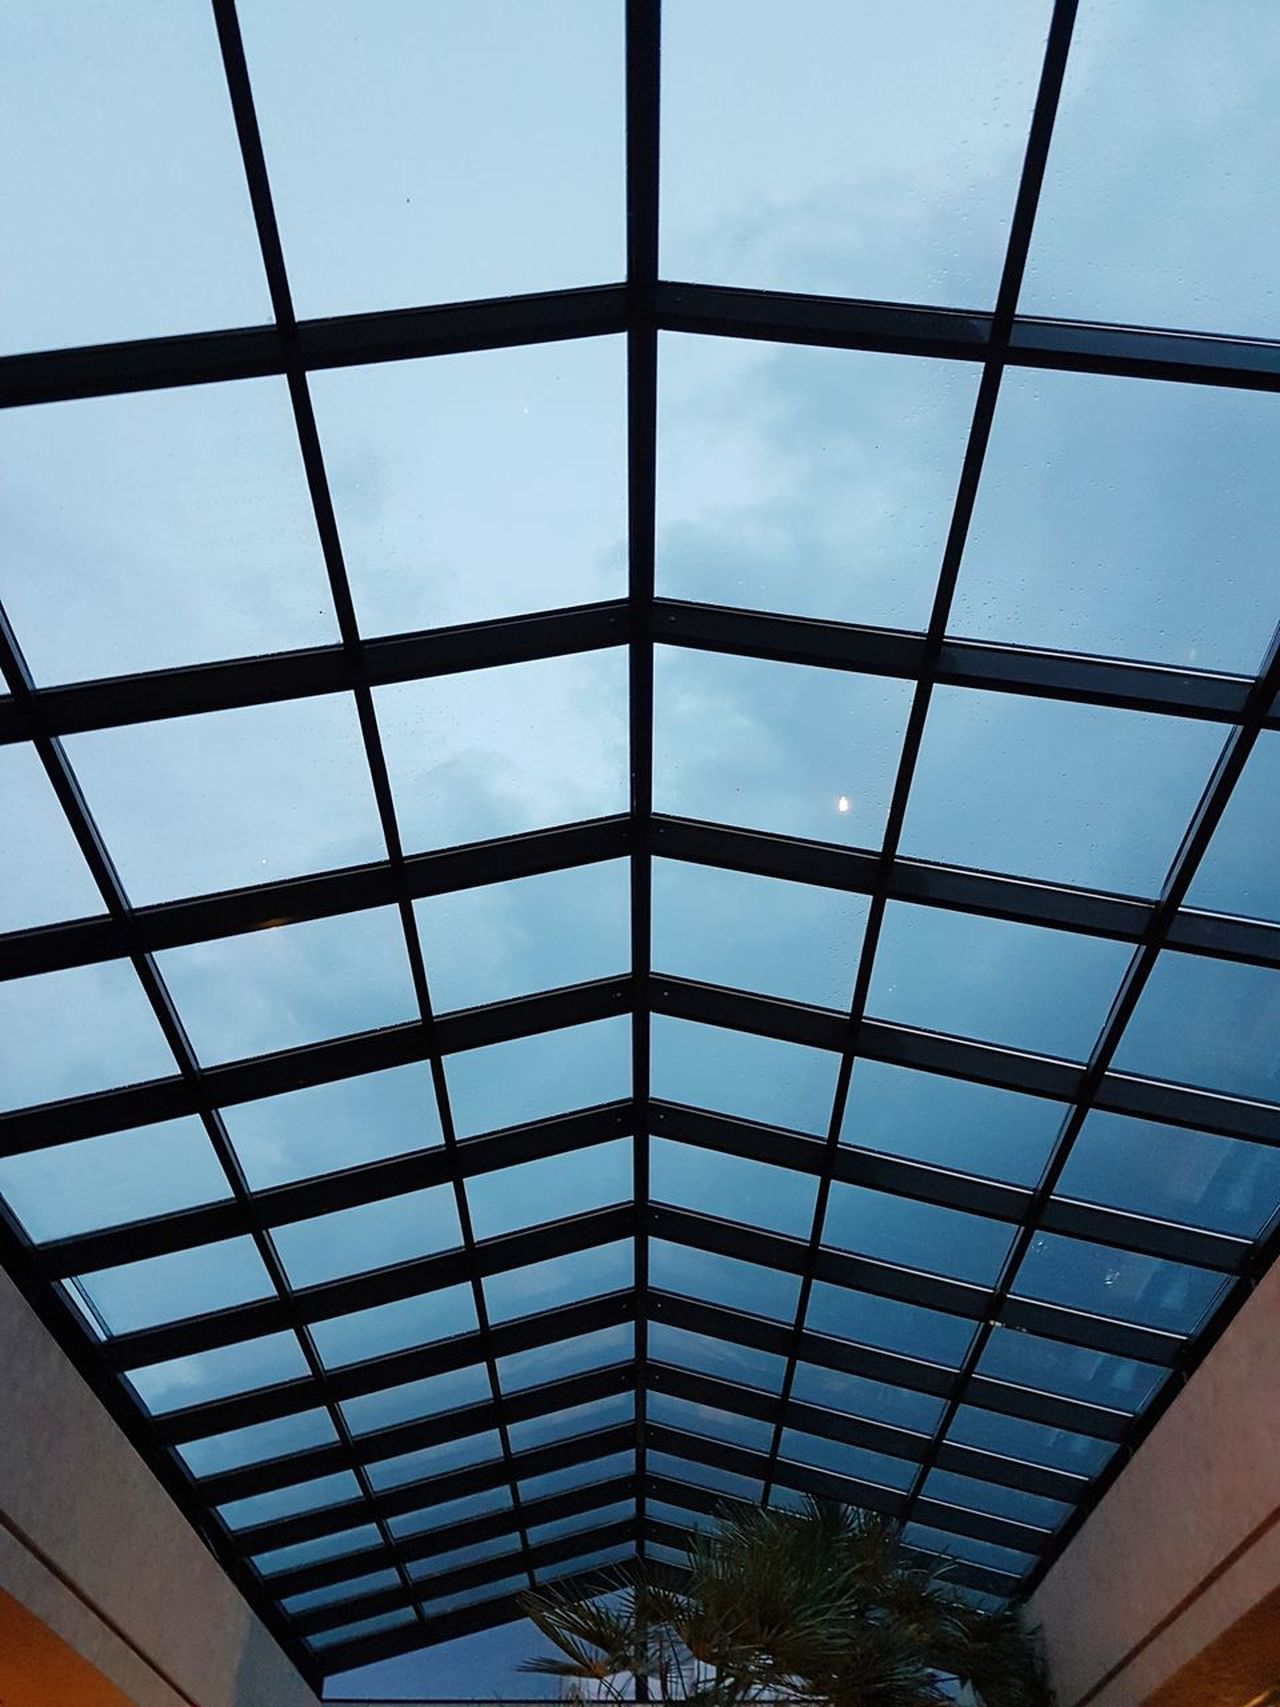 Window Indoors  Full Frame Pattern Ceiling Low Angle View No People Built Structure Architecture Sky EyEmNewHere